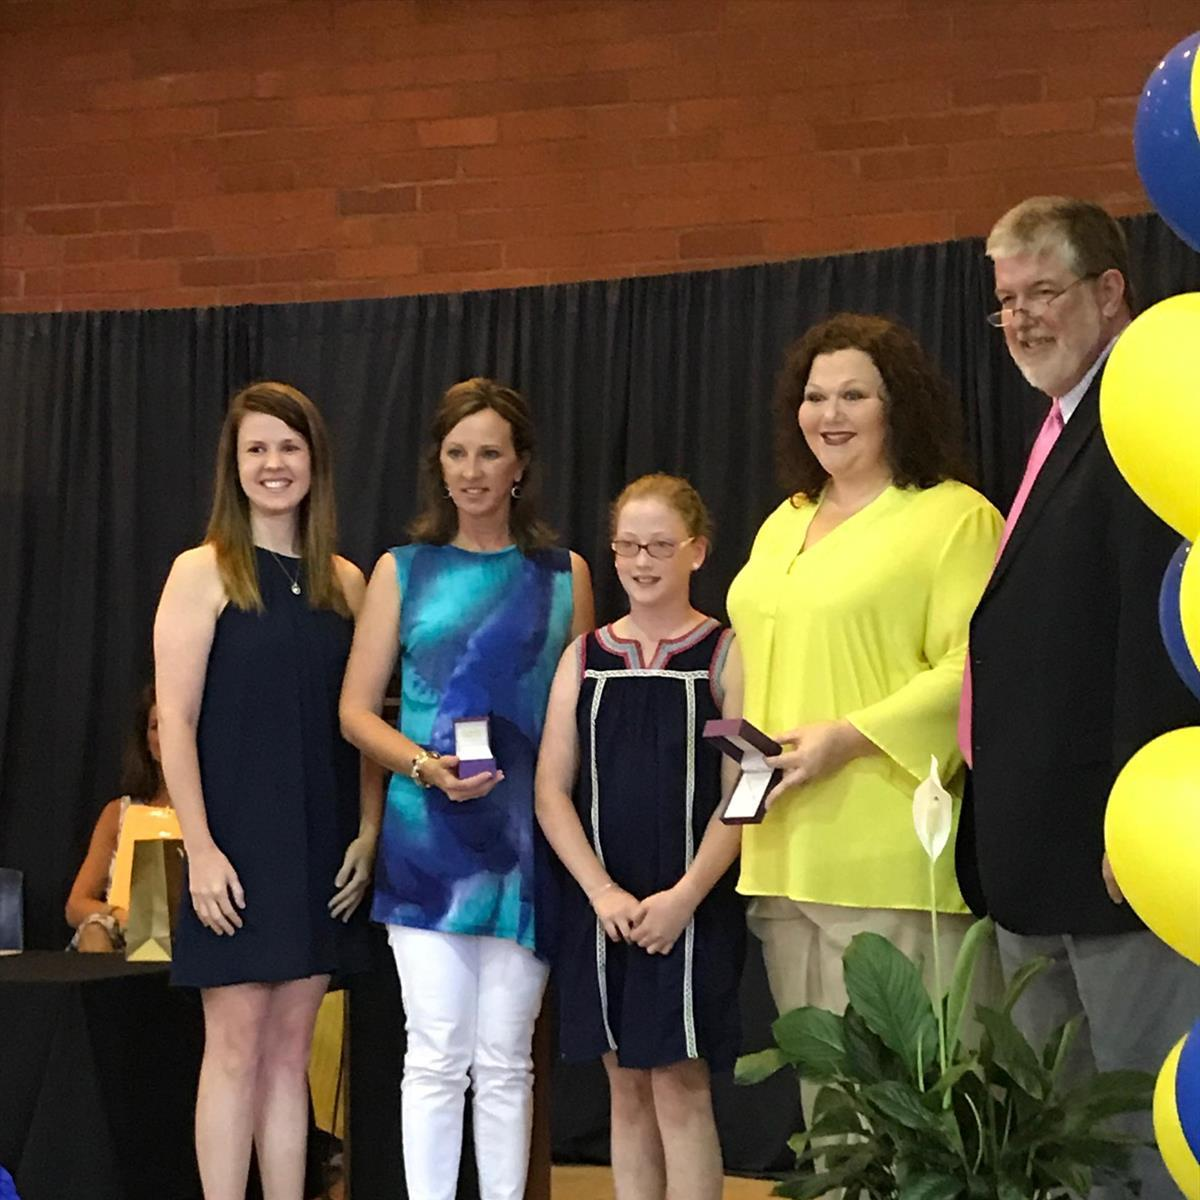 K E Butler Jeweler's Mother's Day Essay Contest Winner